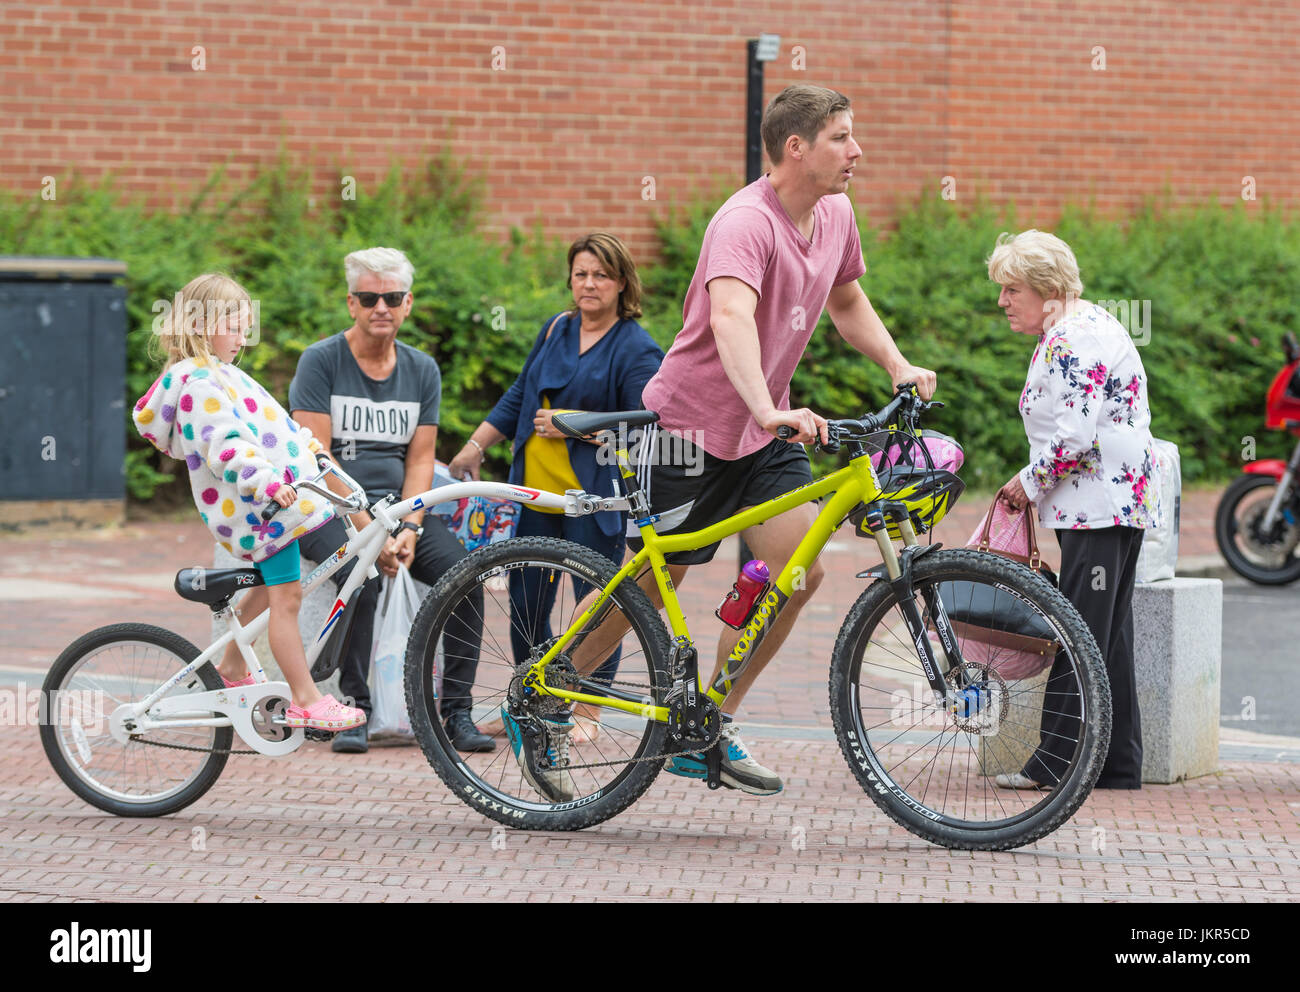 Tag along bicycle trailer for a child to ride behind an adult cyclist. Stock Photo